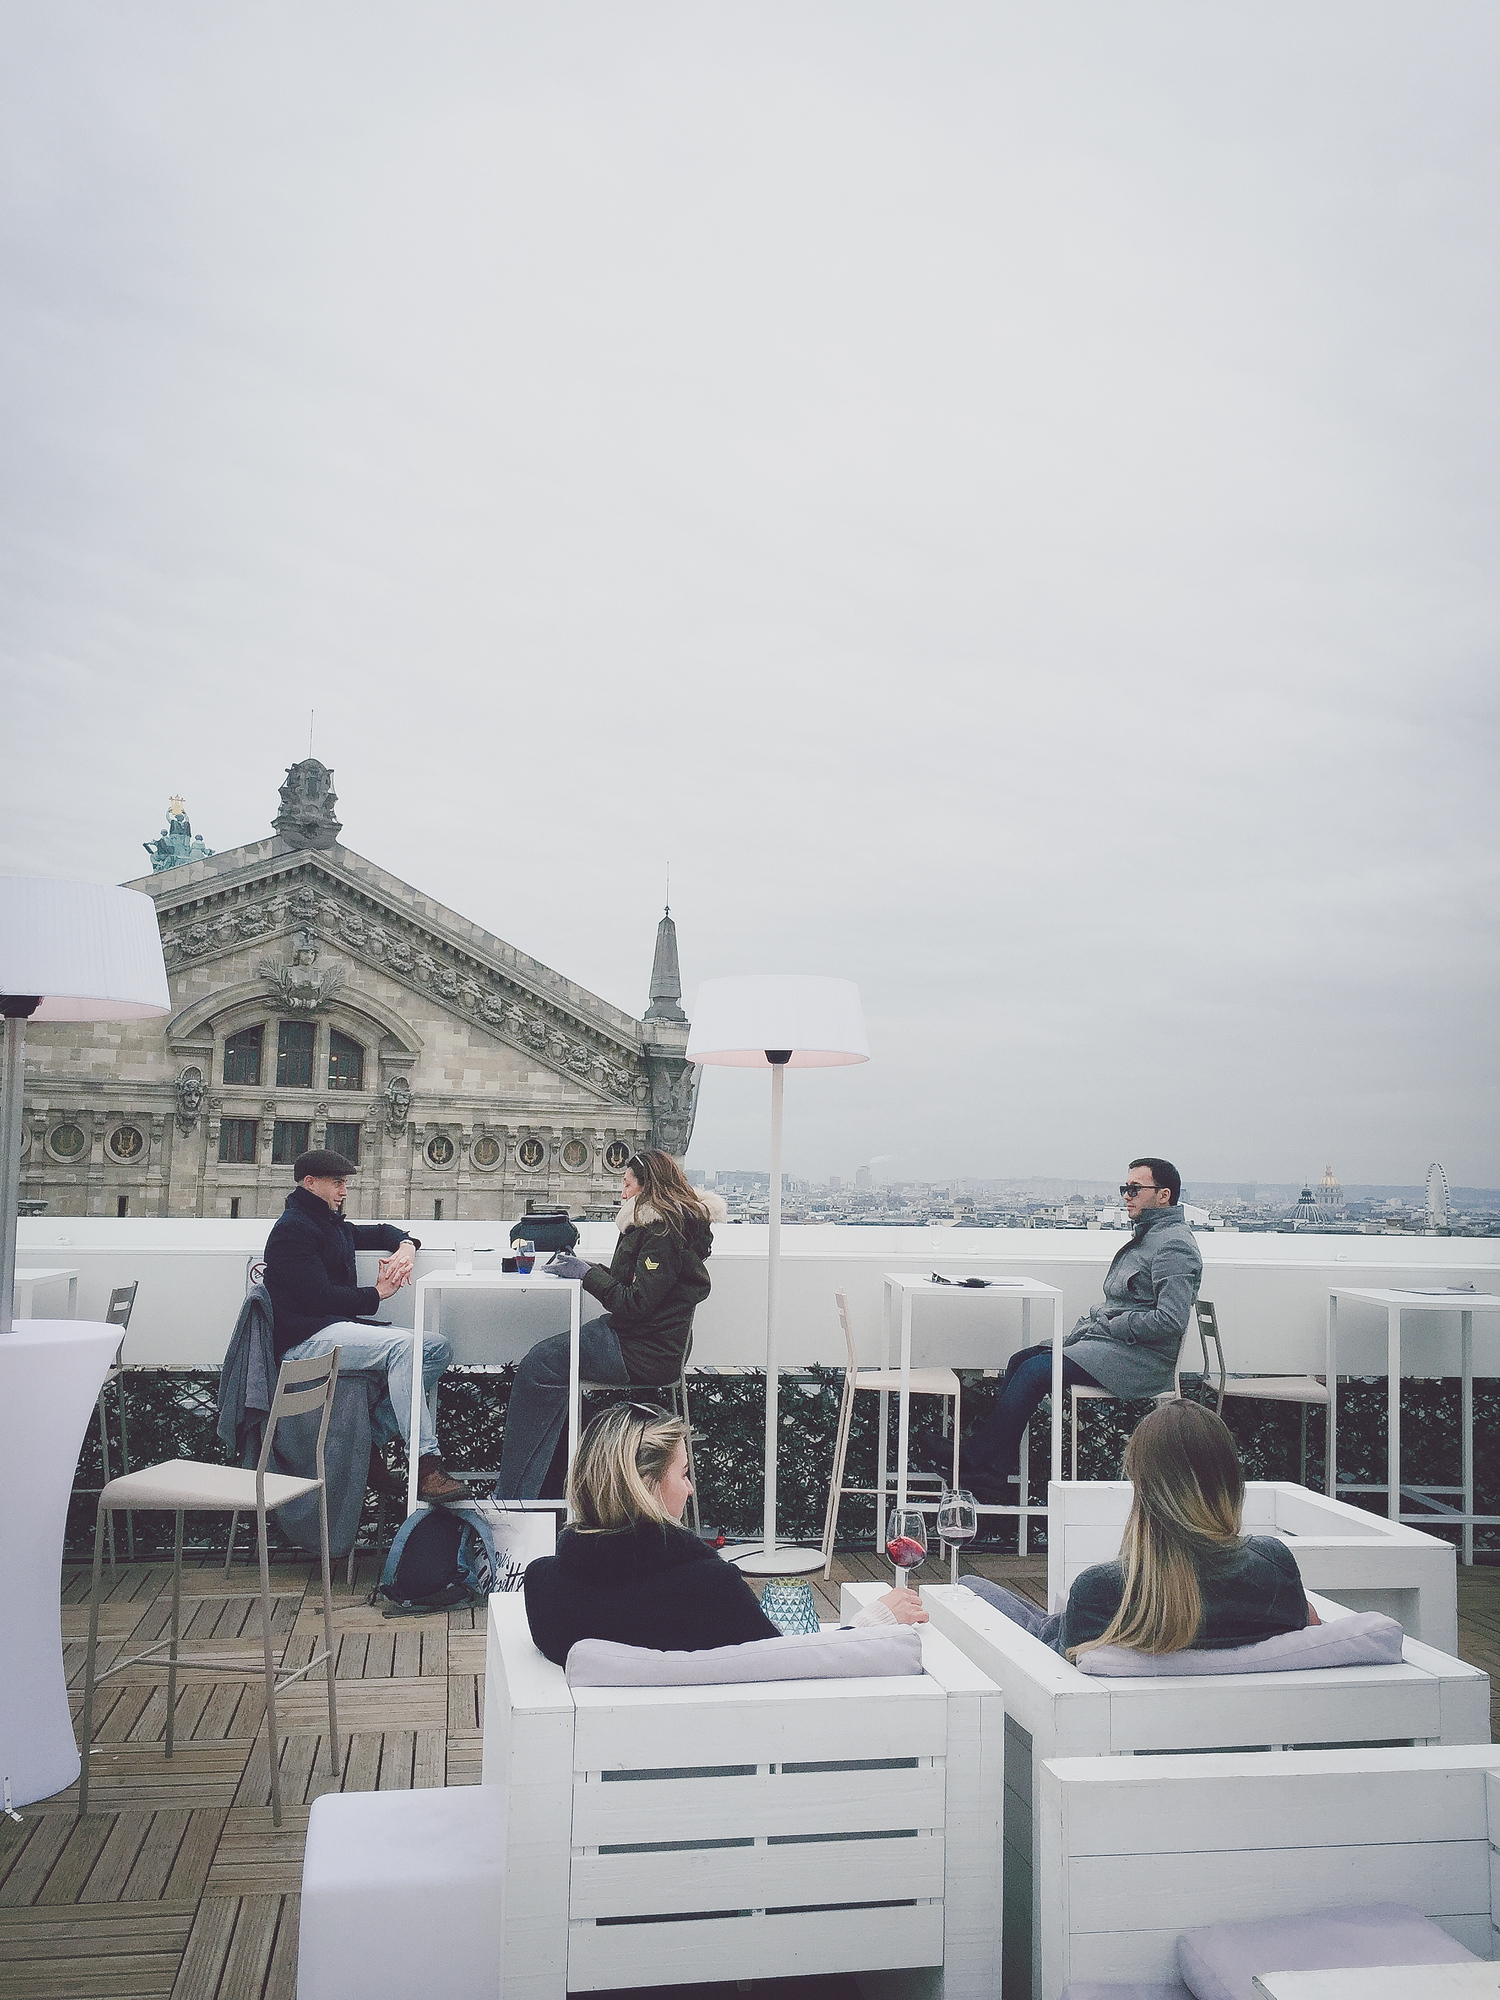 The Ice Cube bar on the Galeries Layfayette rooftop is just option for gourmet food at Galeries Layfayette.